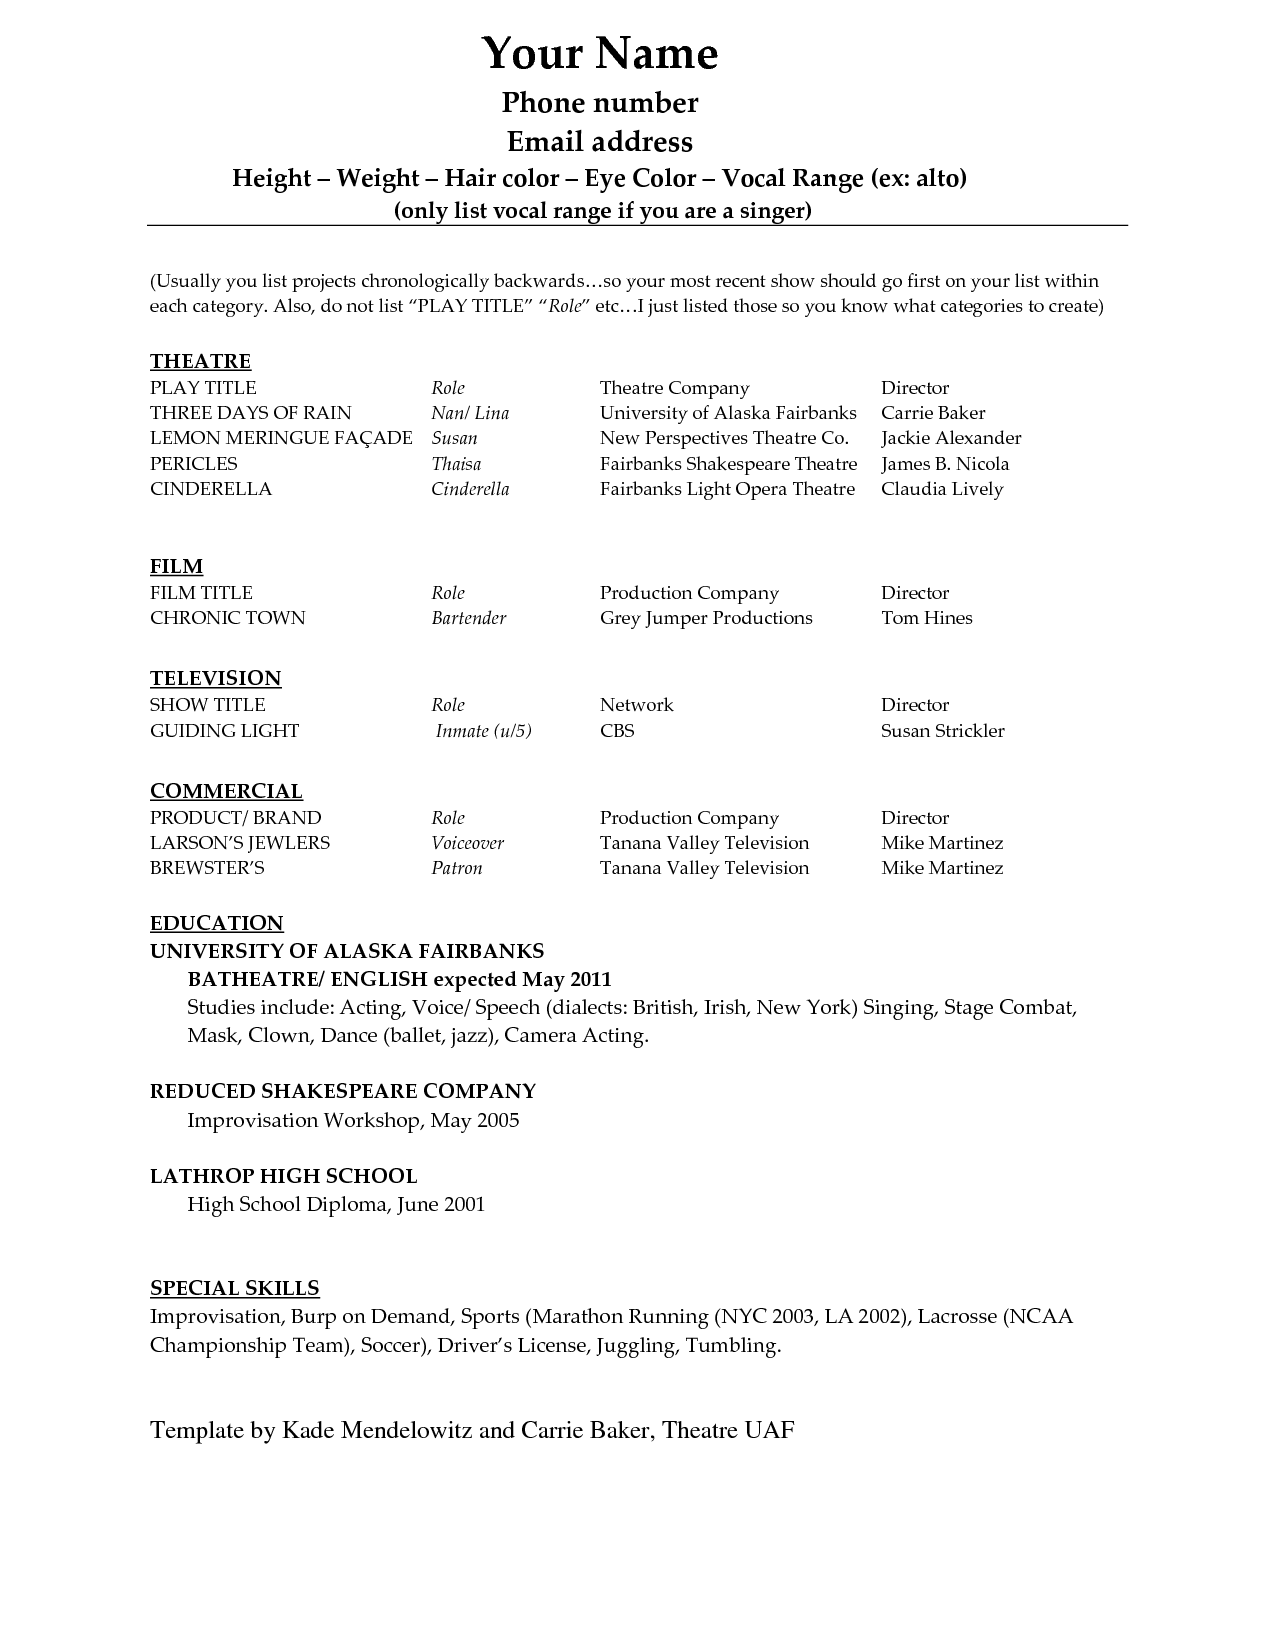 Acting resume template download free httpresumecareer acting resume template download free httpresumecareerfo yelopaper Images